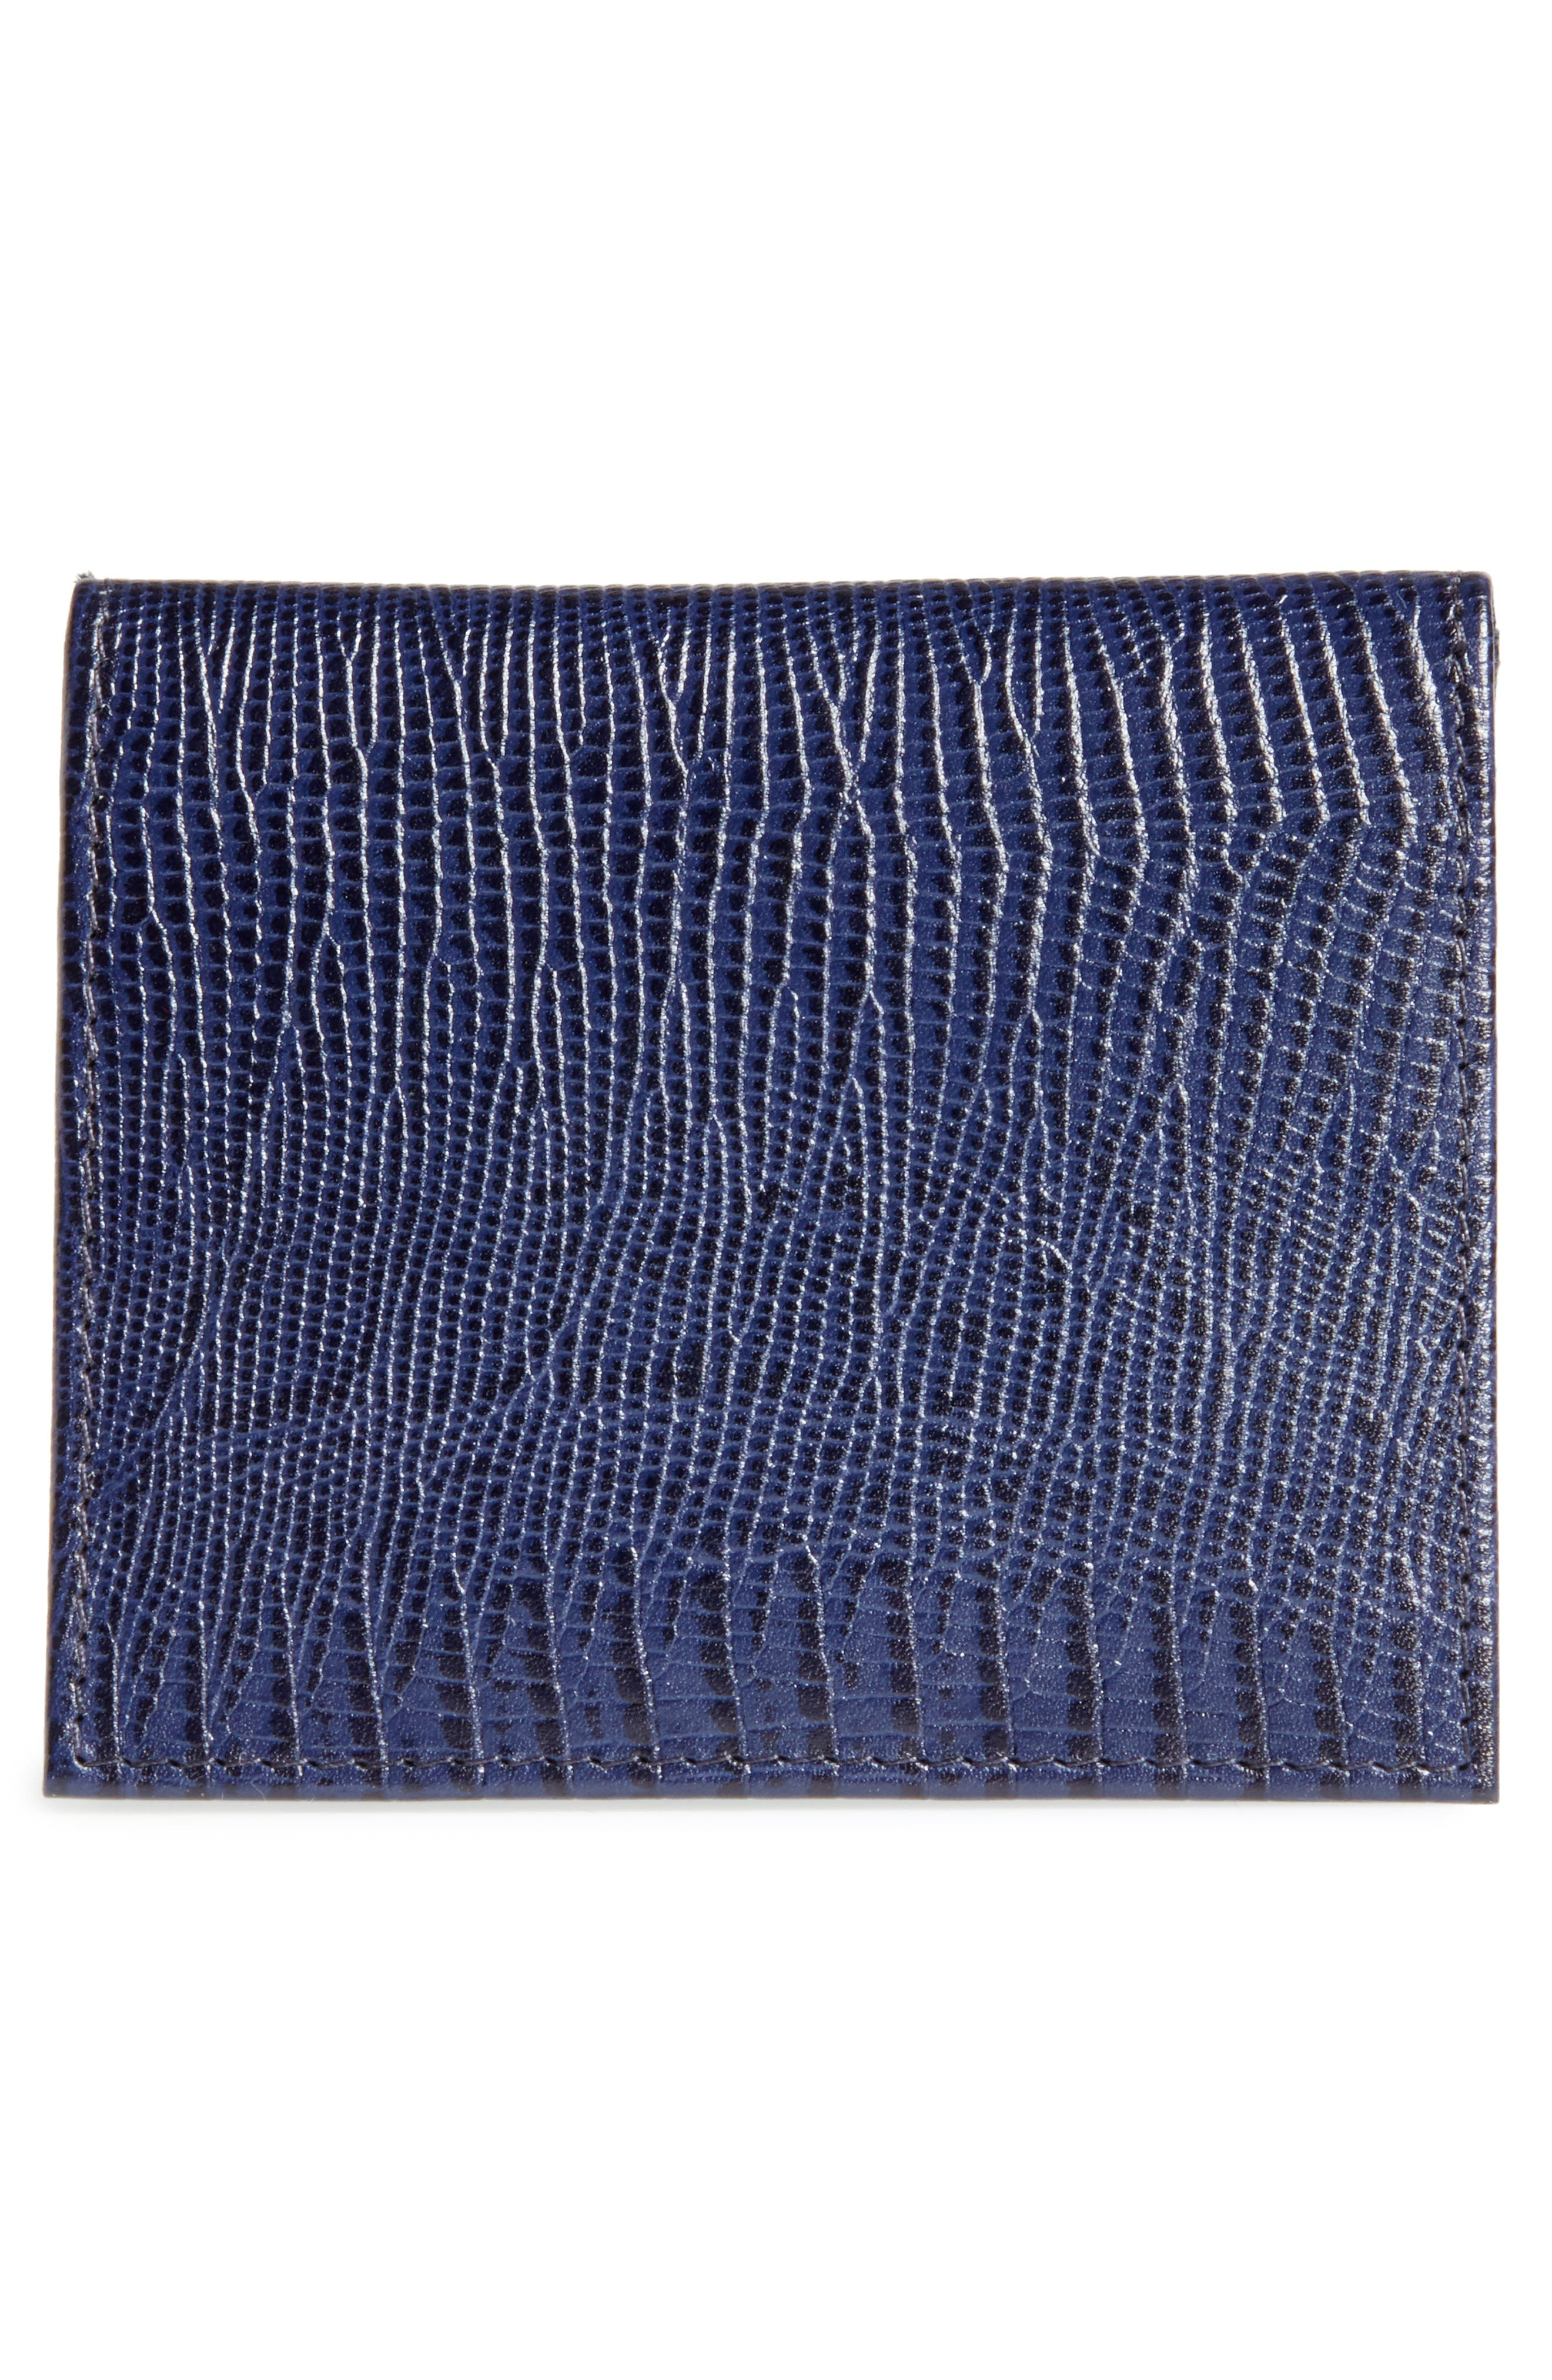 Liztay Lizard Embossed Leather Foldover Card Case,                             Alternate thumbnail 3, color,                             Navy